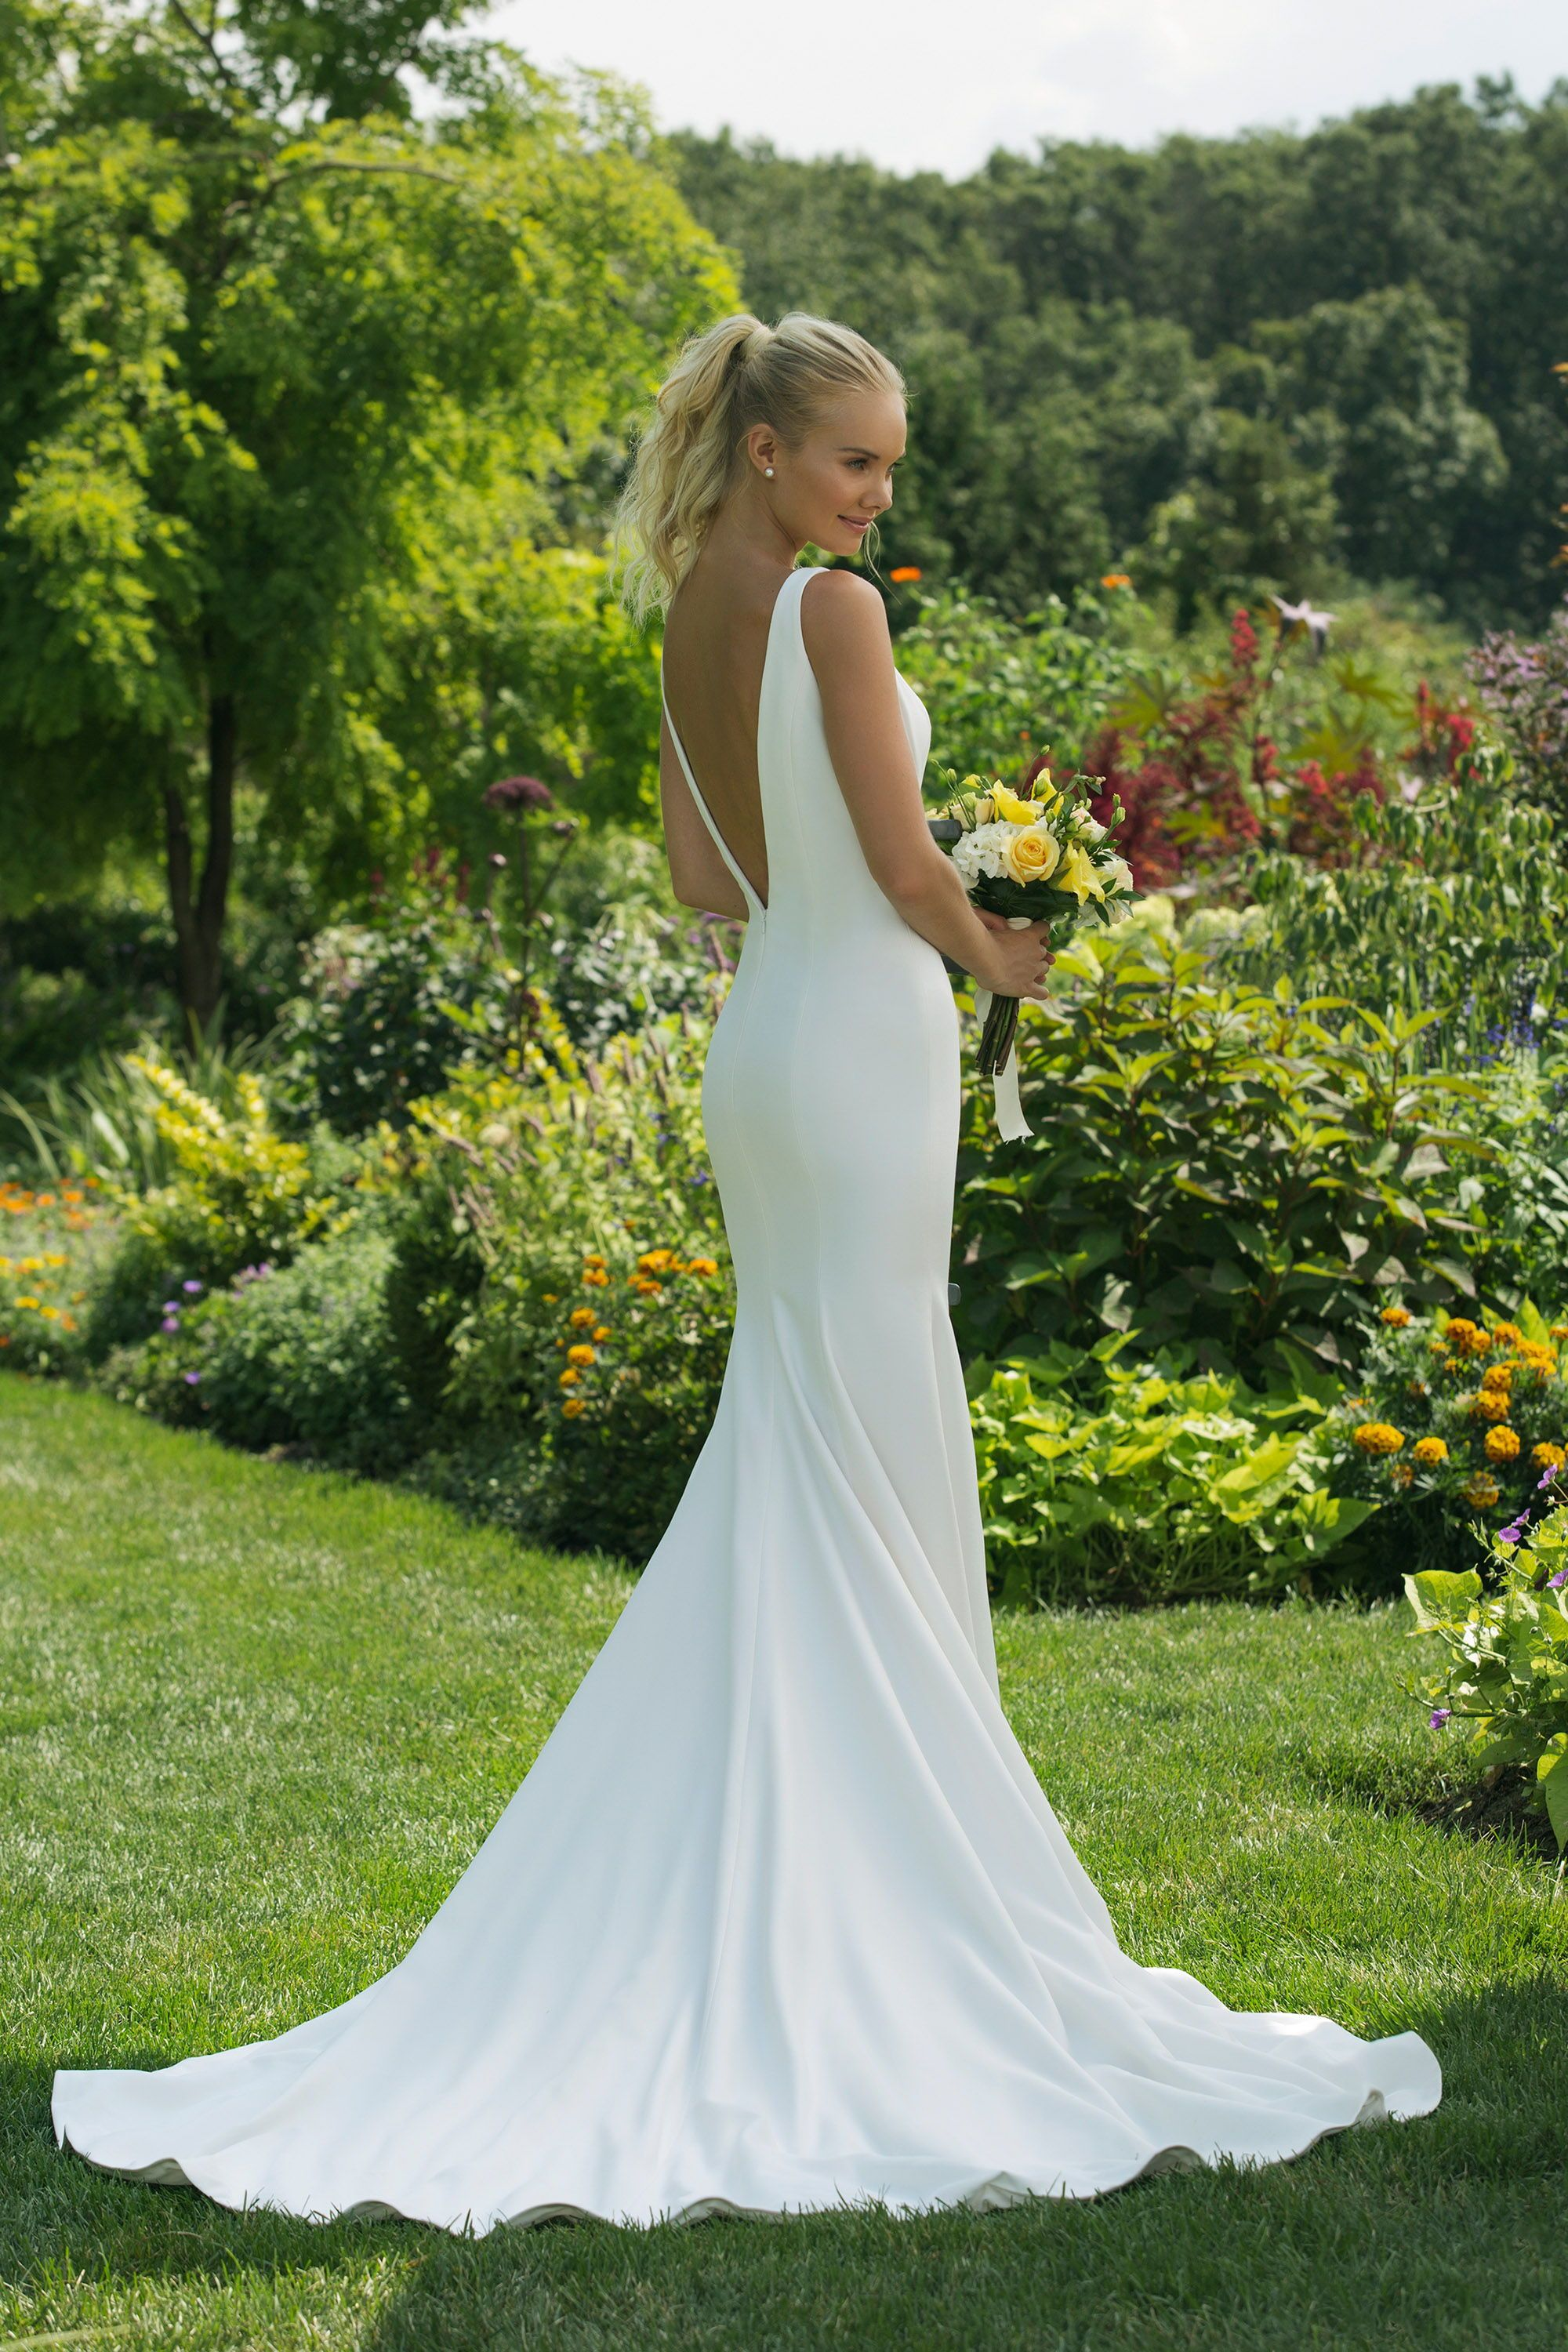 Sweetheart Gowns 11018 Fitted Crepe Wedding Dress V Neckline With A Low Back And Delicate Train Wedding Dresses Crepe Wedding Dress Modest Wedding Dresses